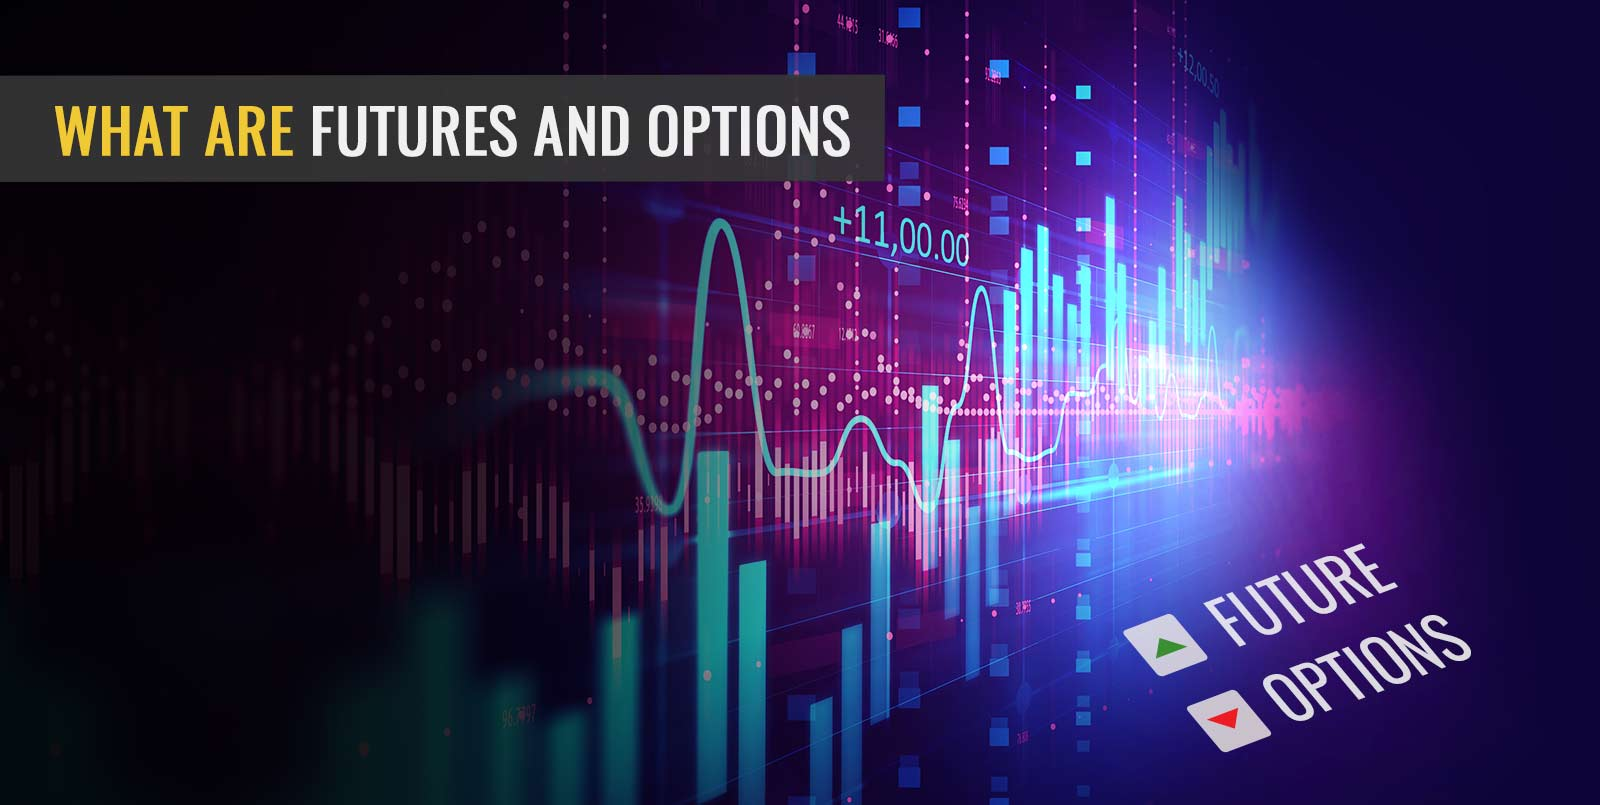 What are futures and options